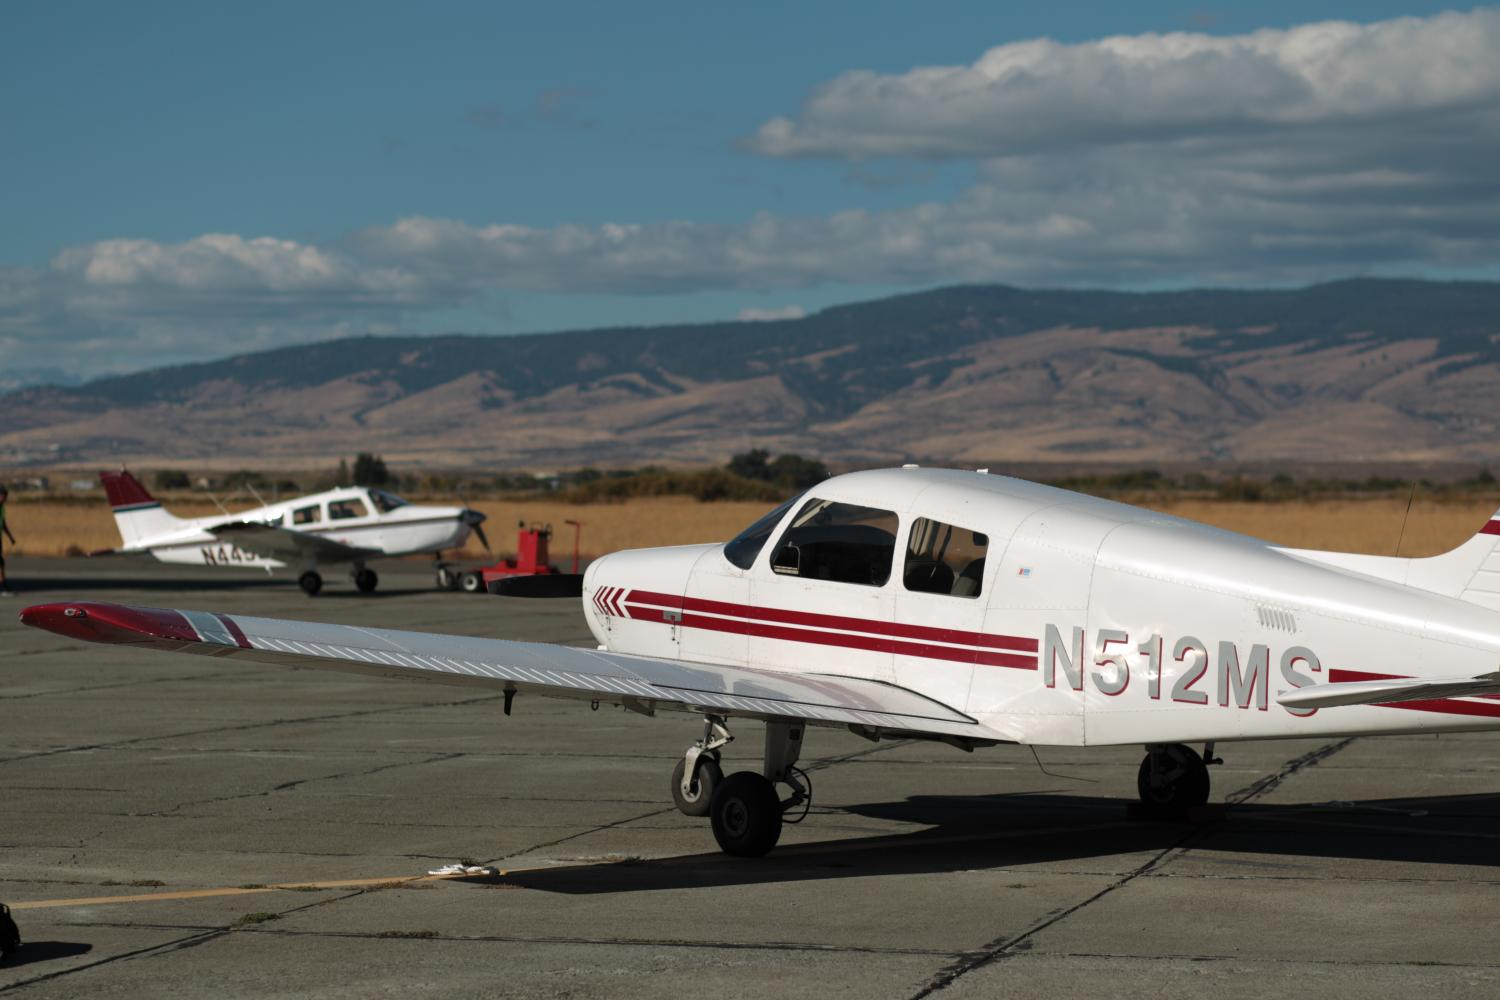 Two of the seven CWU Aviation planes rest on the tarmac ready for students. CWU's Aviation program is striking out on its own to seek national accreditation.